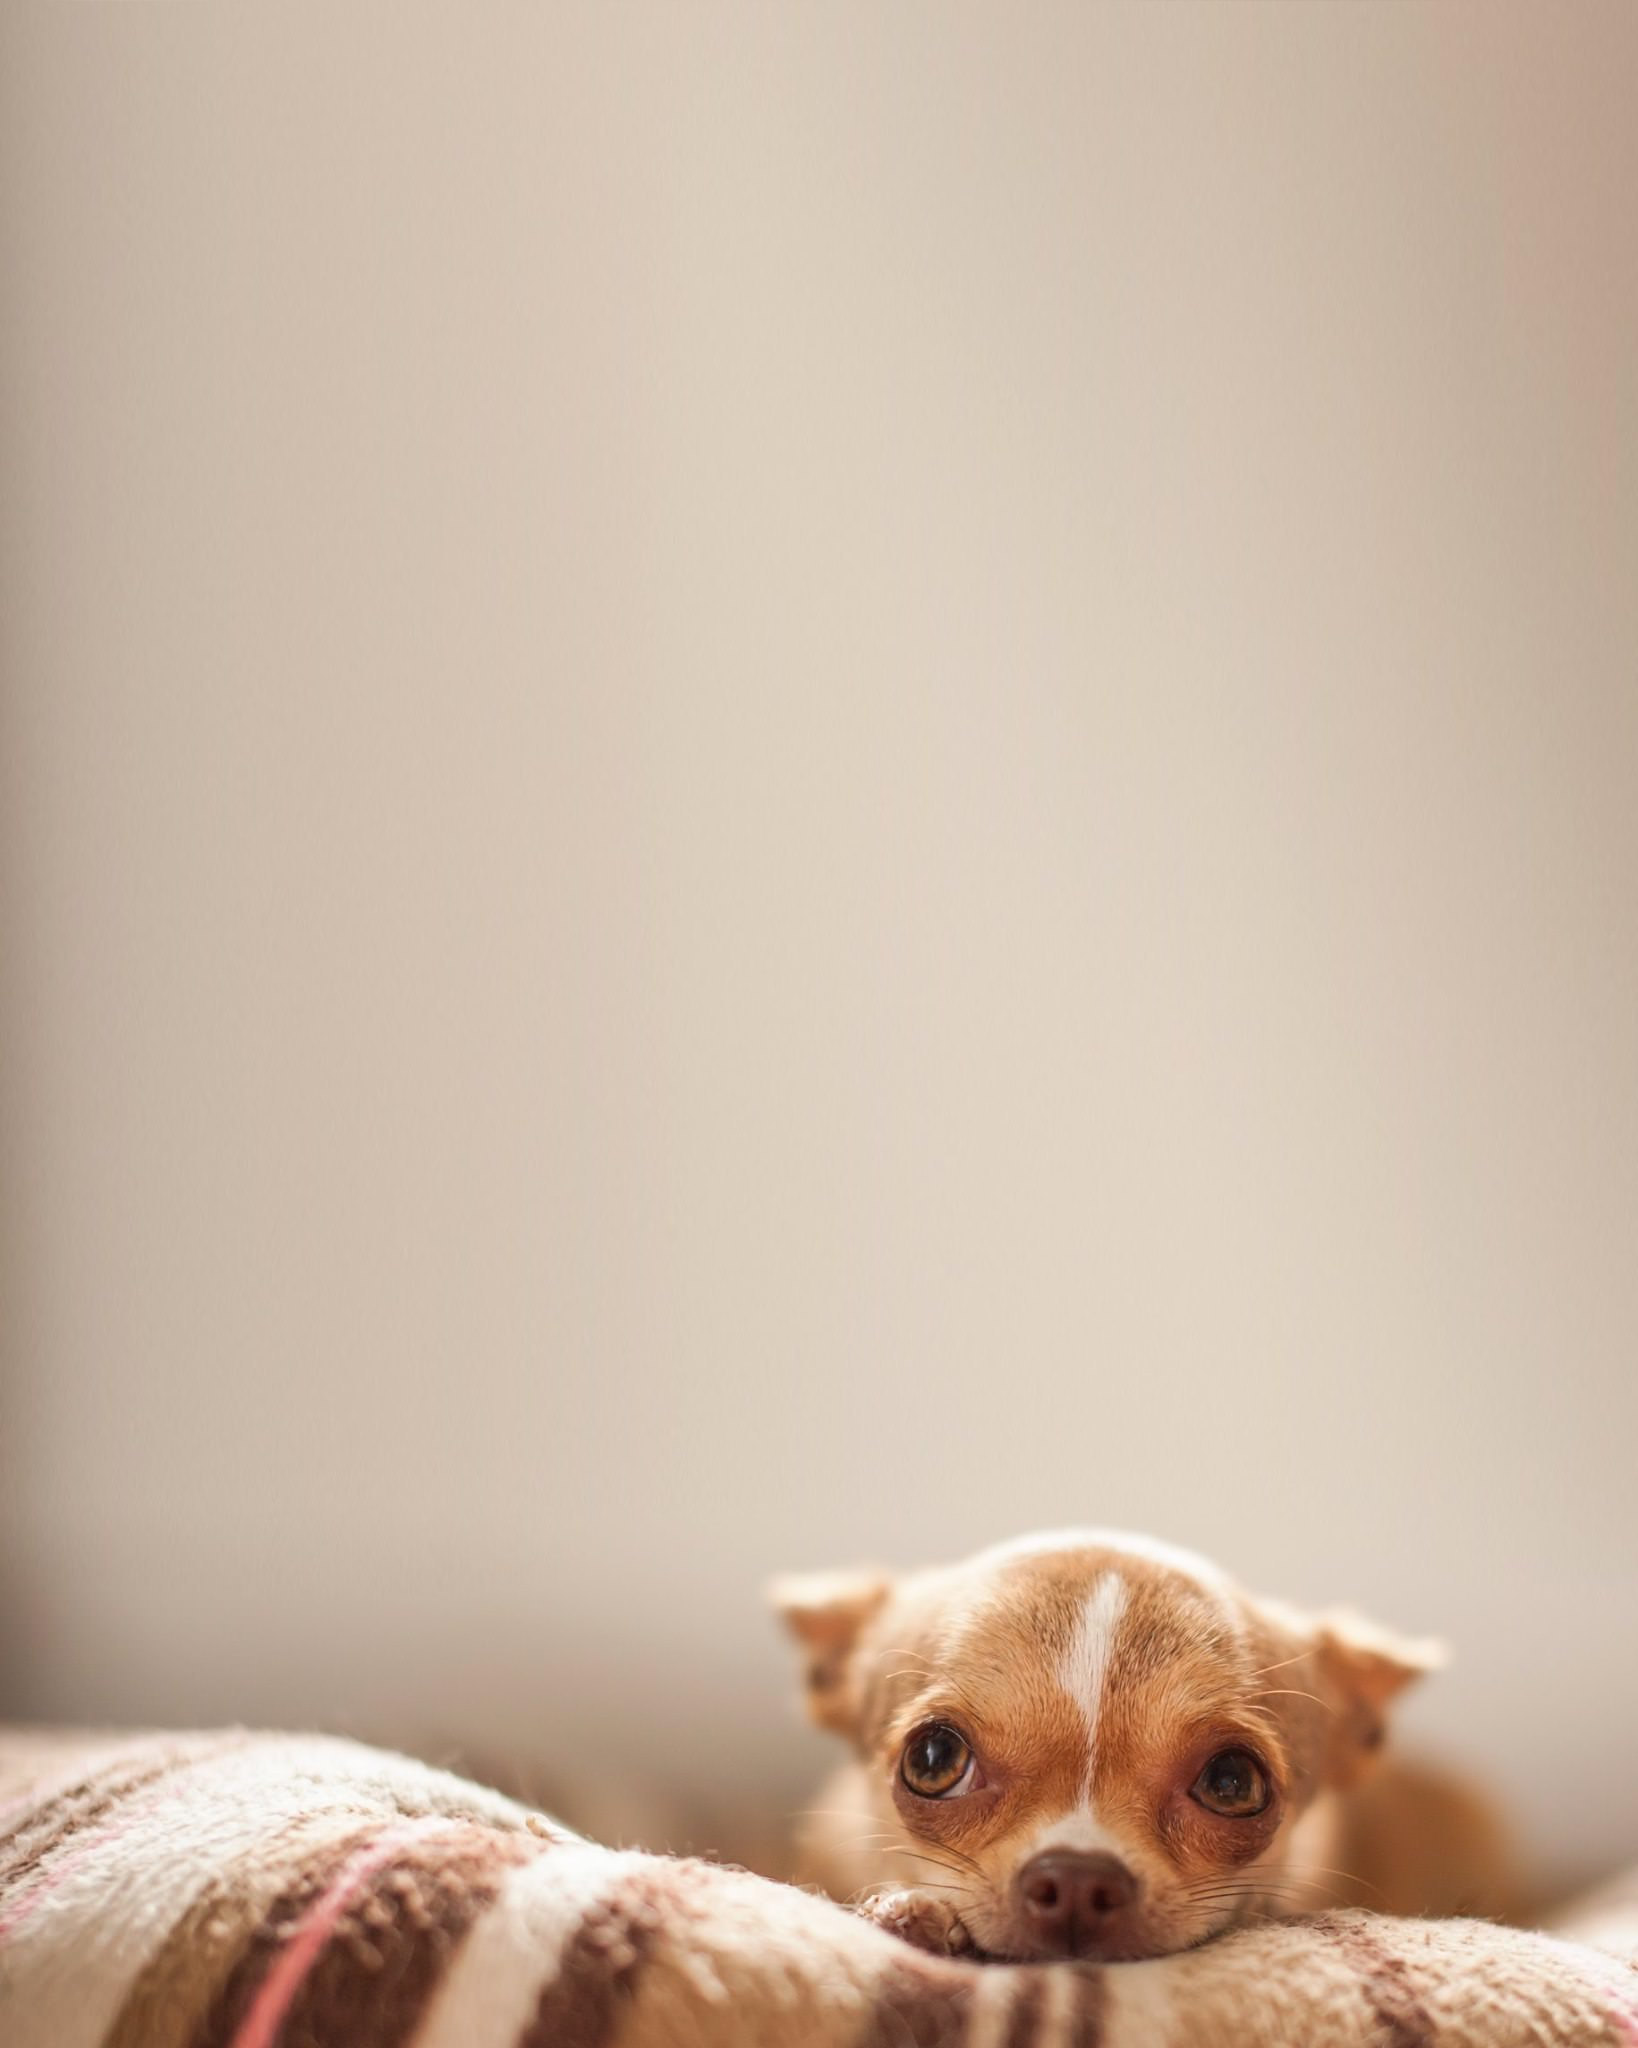 a chihuahua lies on the bed and looks up